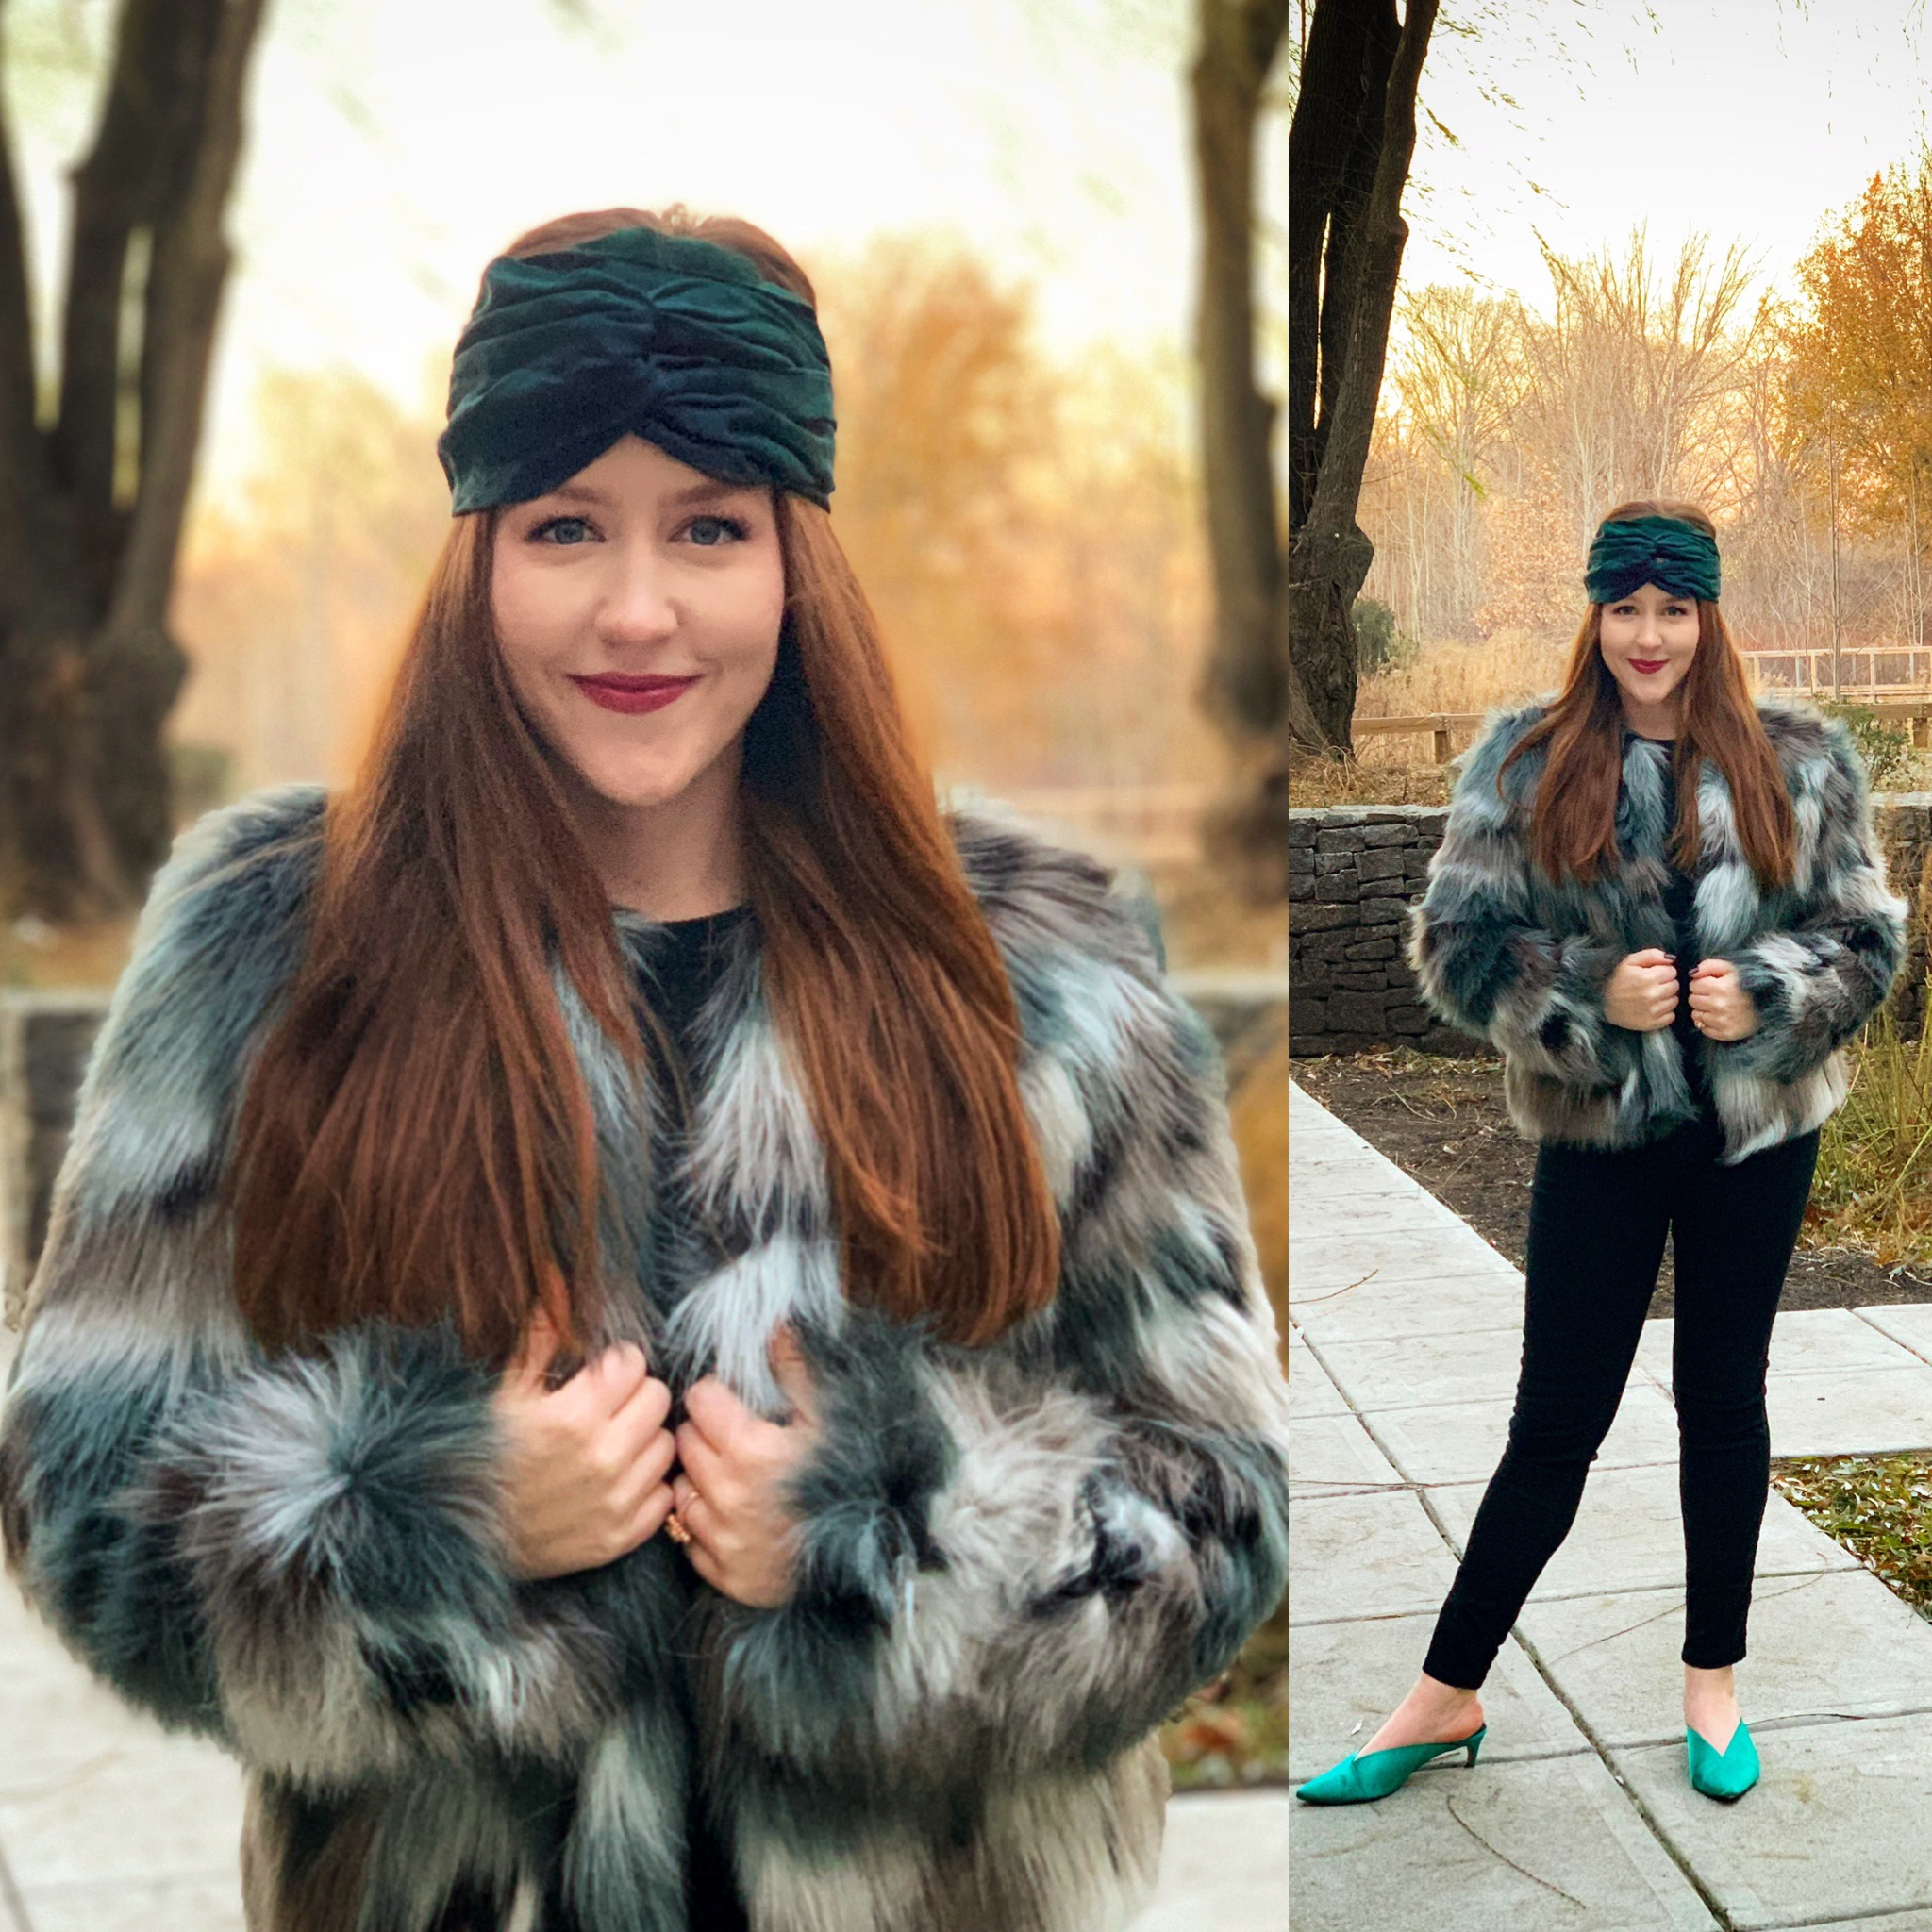 Coat: TJ Maxx, similar    here    and    here     Headband: Target (out of stock), similar    here     Shoes: Topshop (out of stock), similar    here